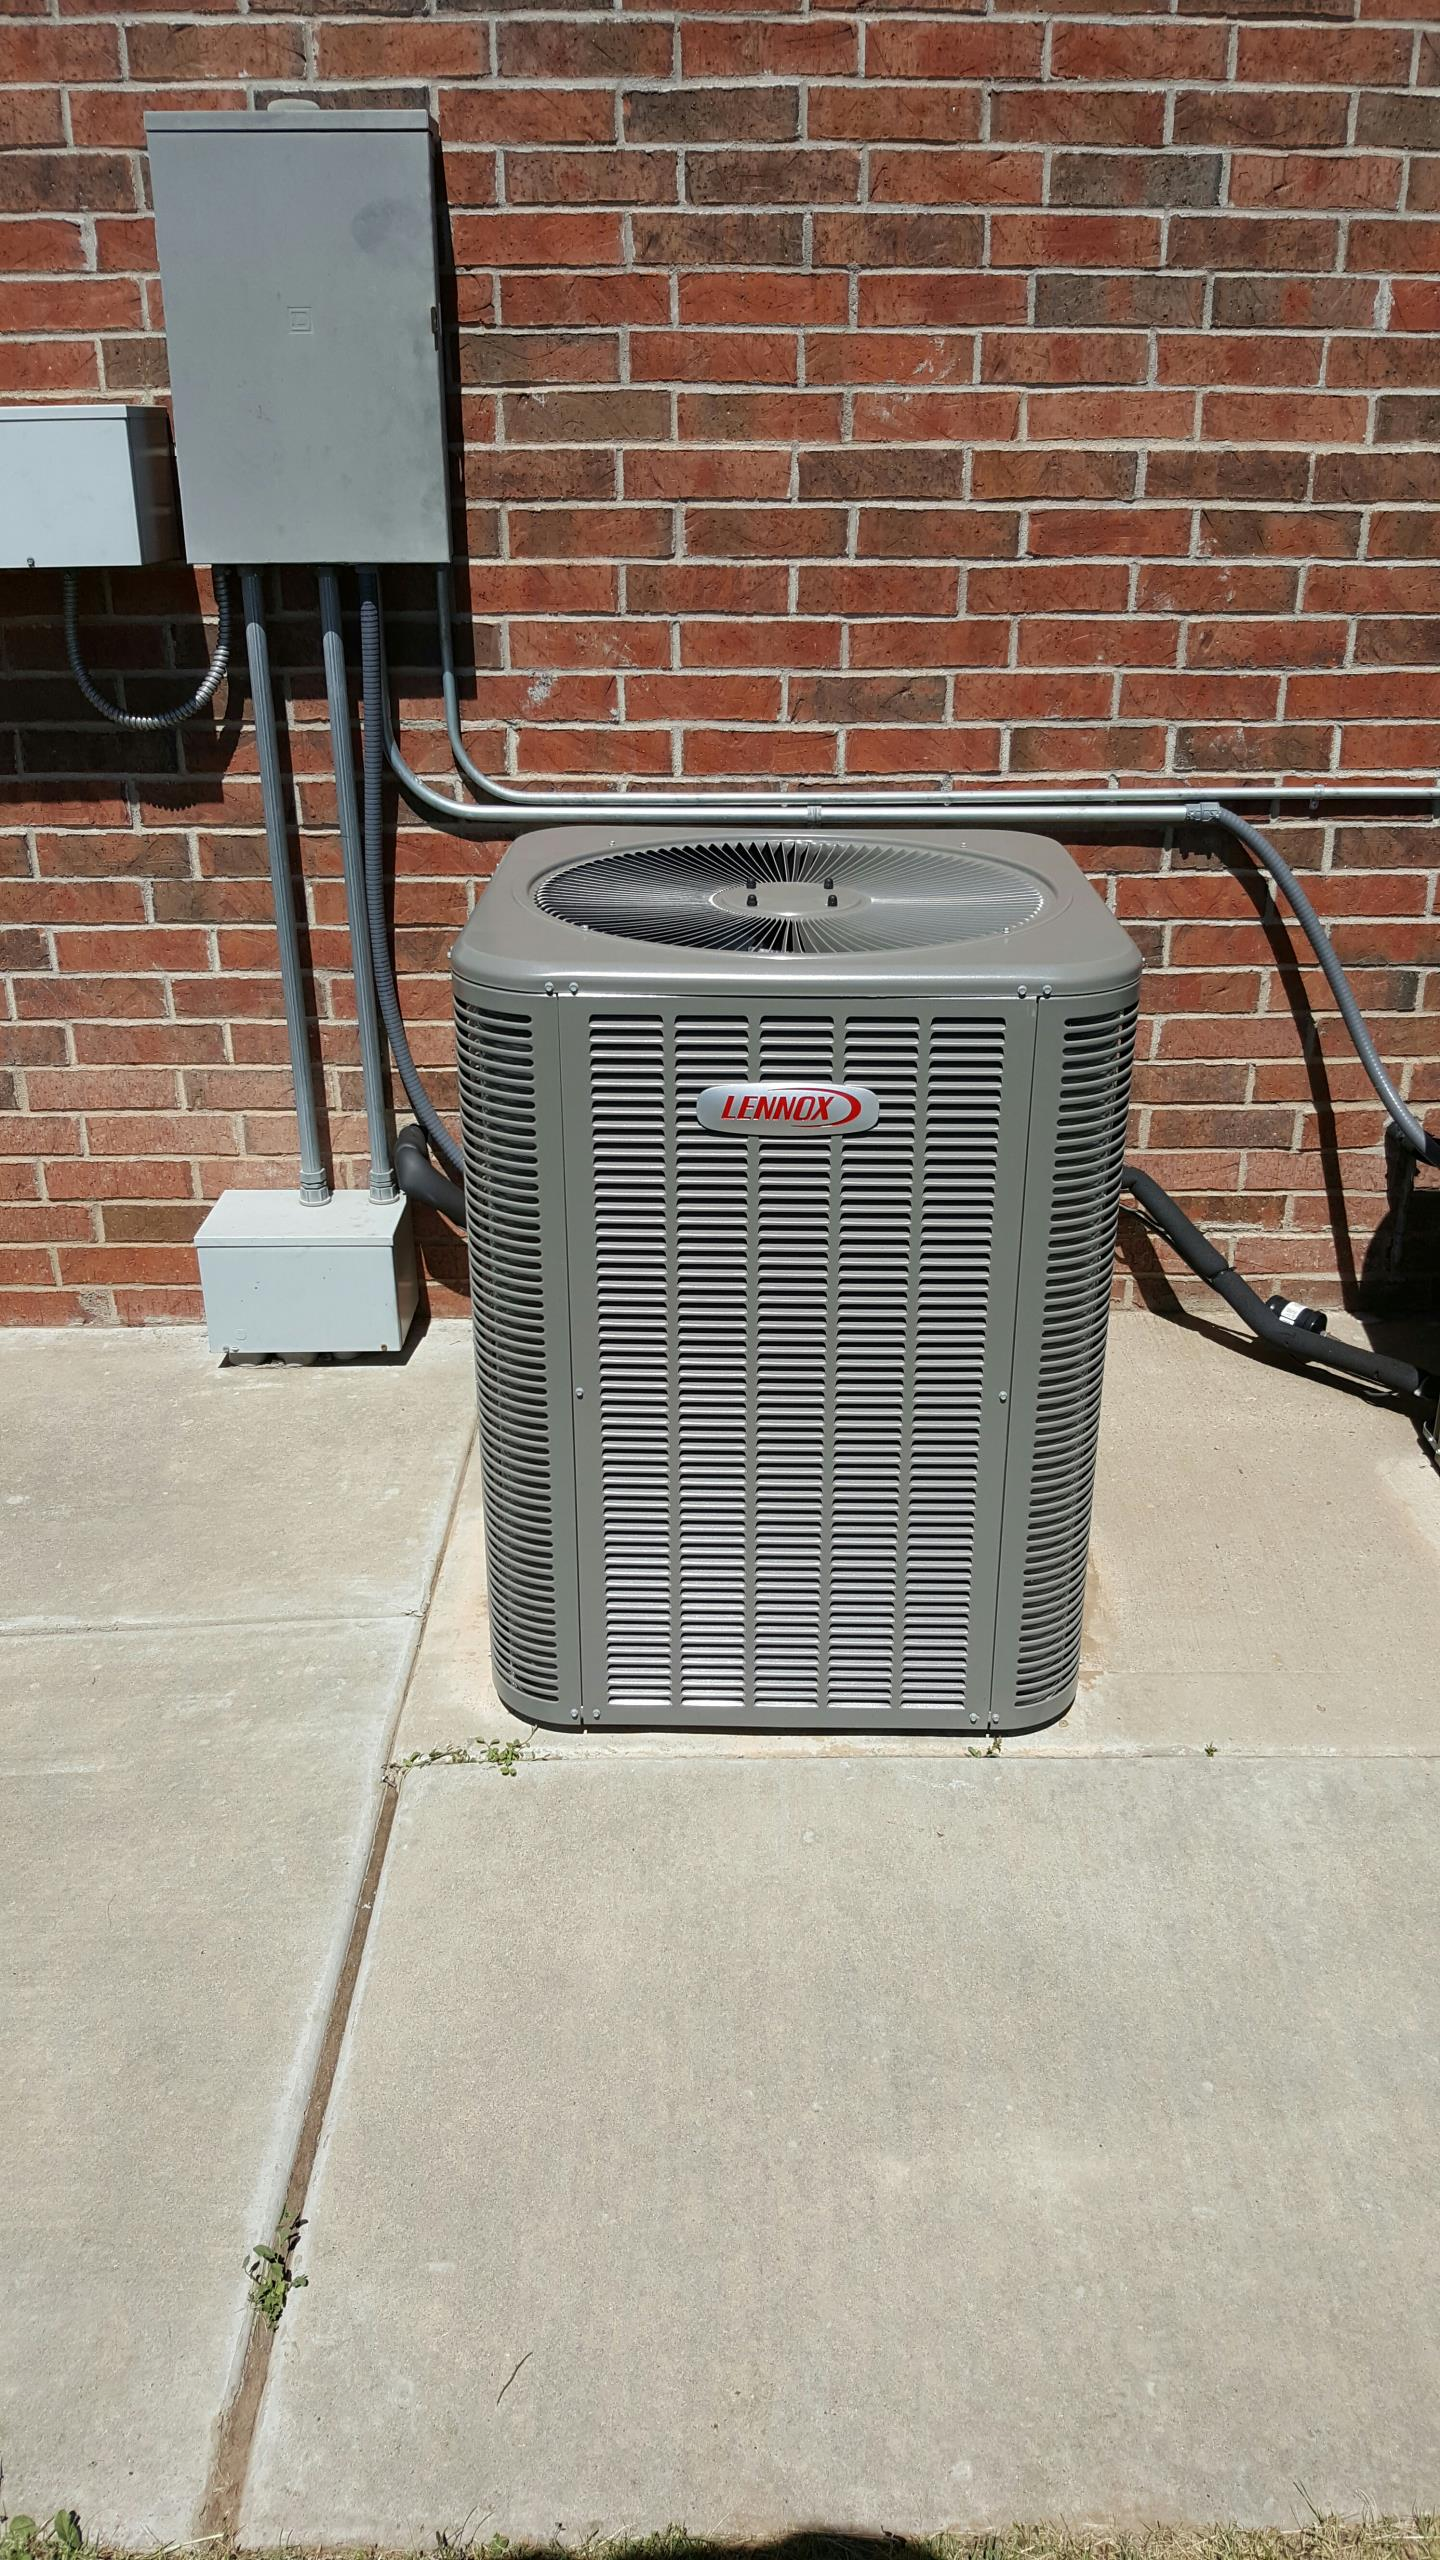 #754837 Real Time Service Area For Amarillo Air Conditioning Highest Rated 12786 Lennox Air Conditioner img with 1440x2560 px on helpvideos.info - Air Conditioners, Air Coolers and more